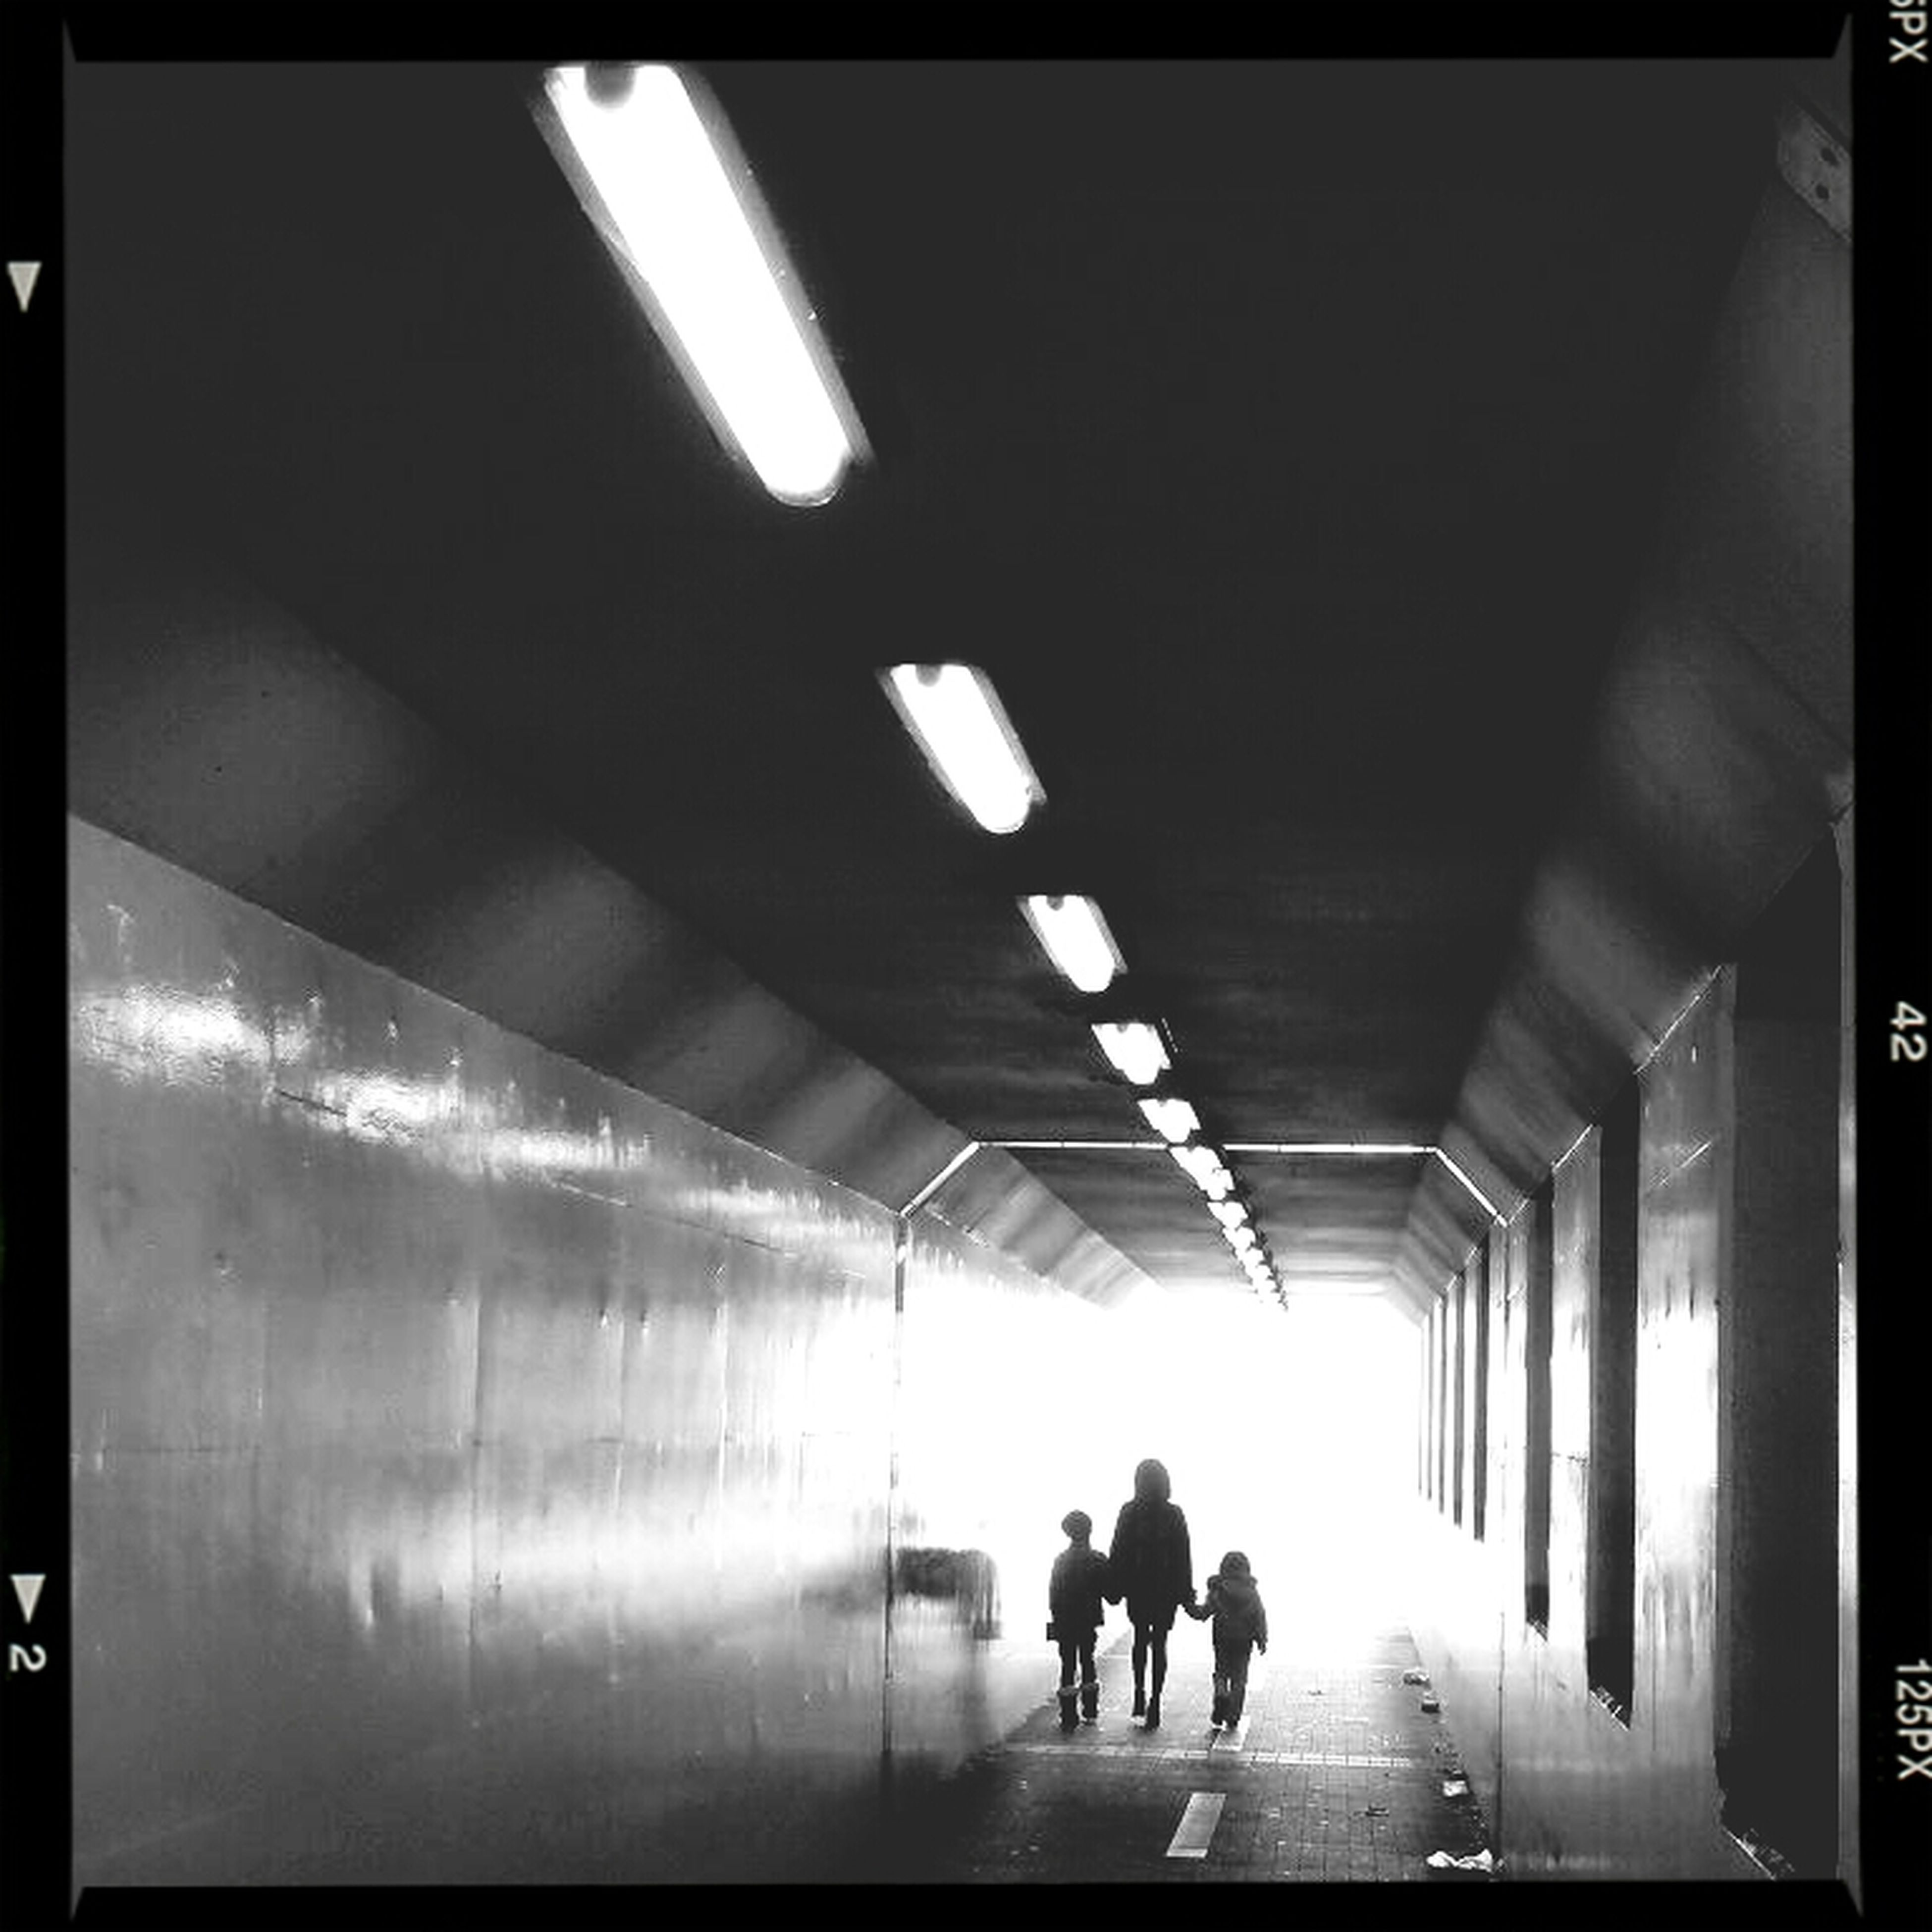 indoors, illuminated, men, walking, lifestyles, ceiling, full length, person, silhouette, the way forward, rear view, built structure, lighting equipment, architecture, leisure activity, subway, transportation